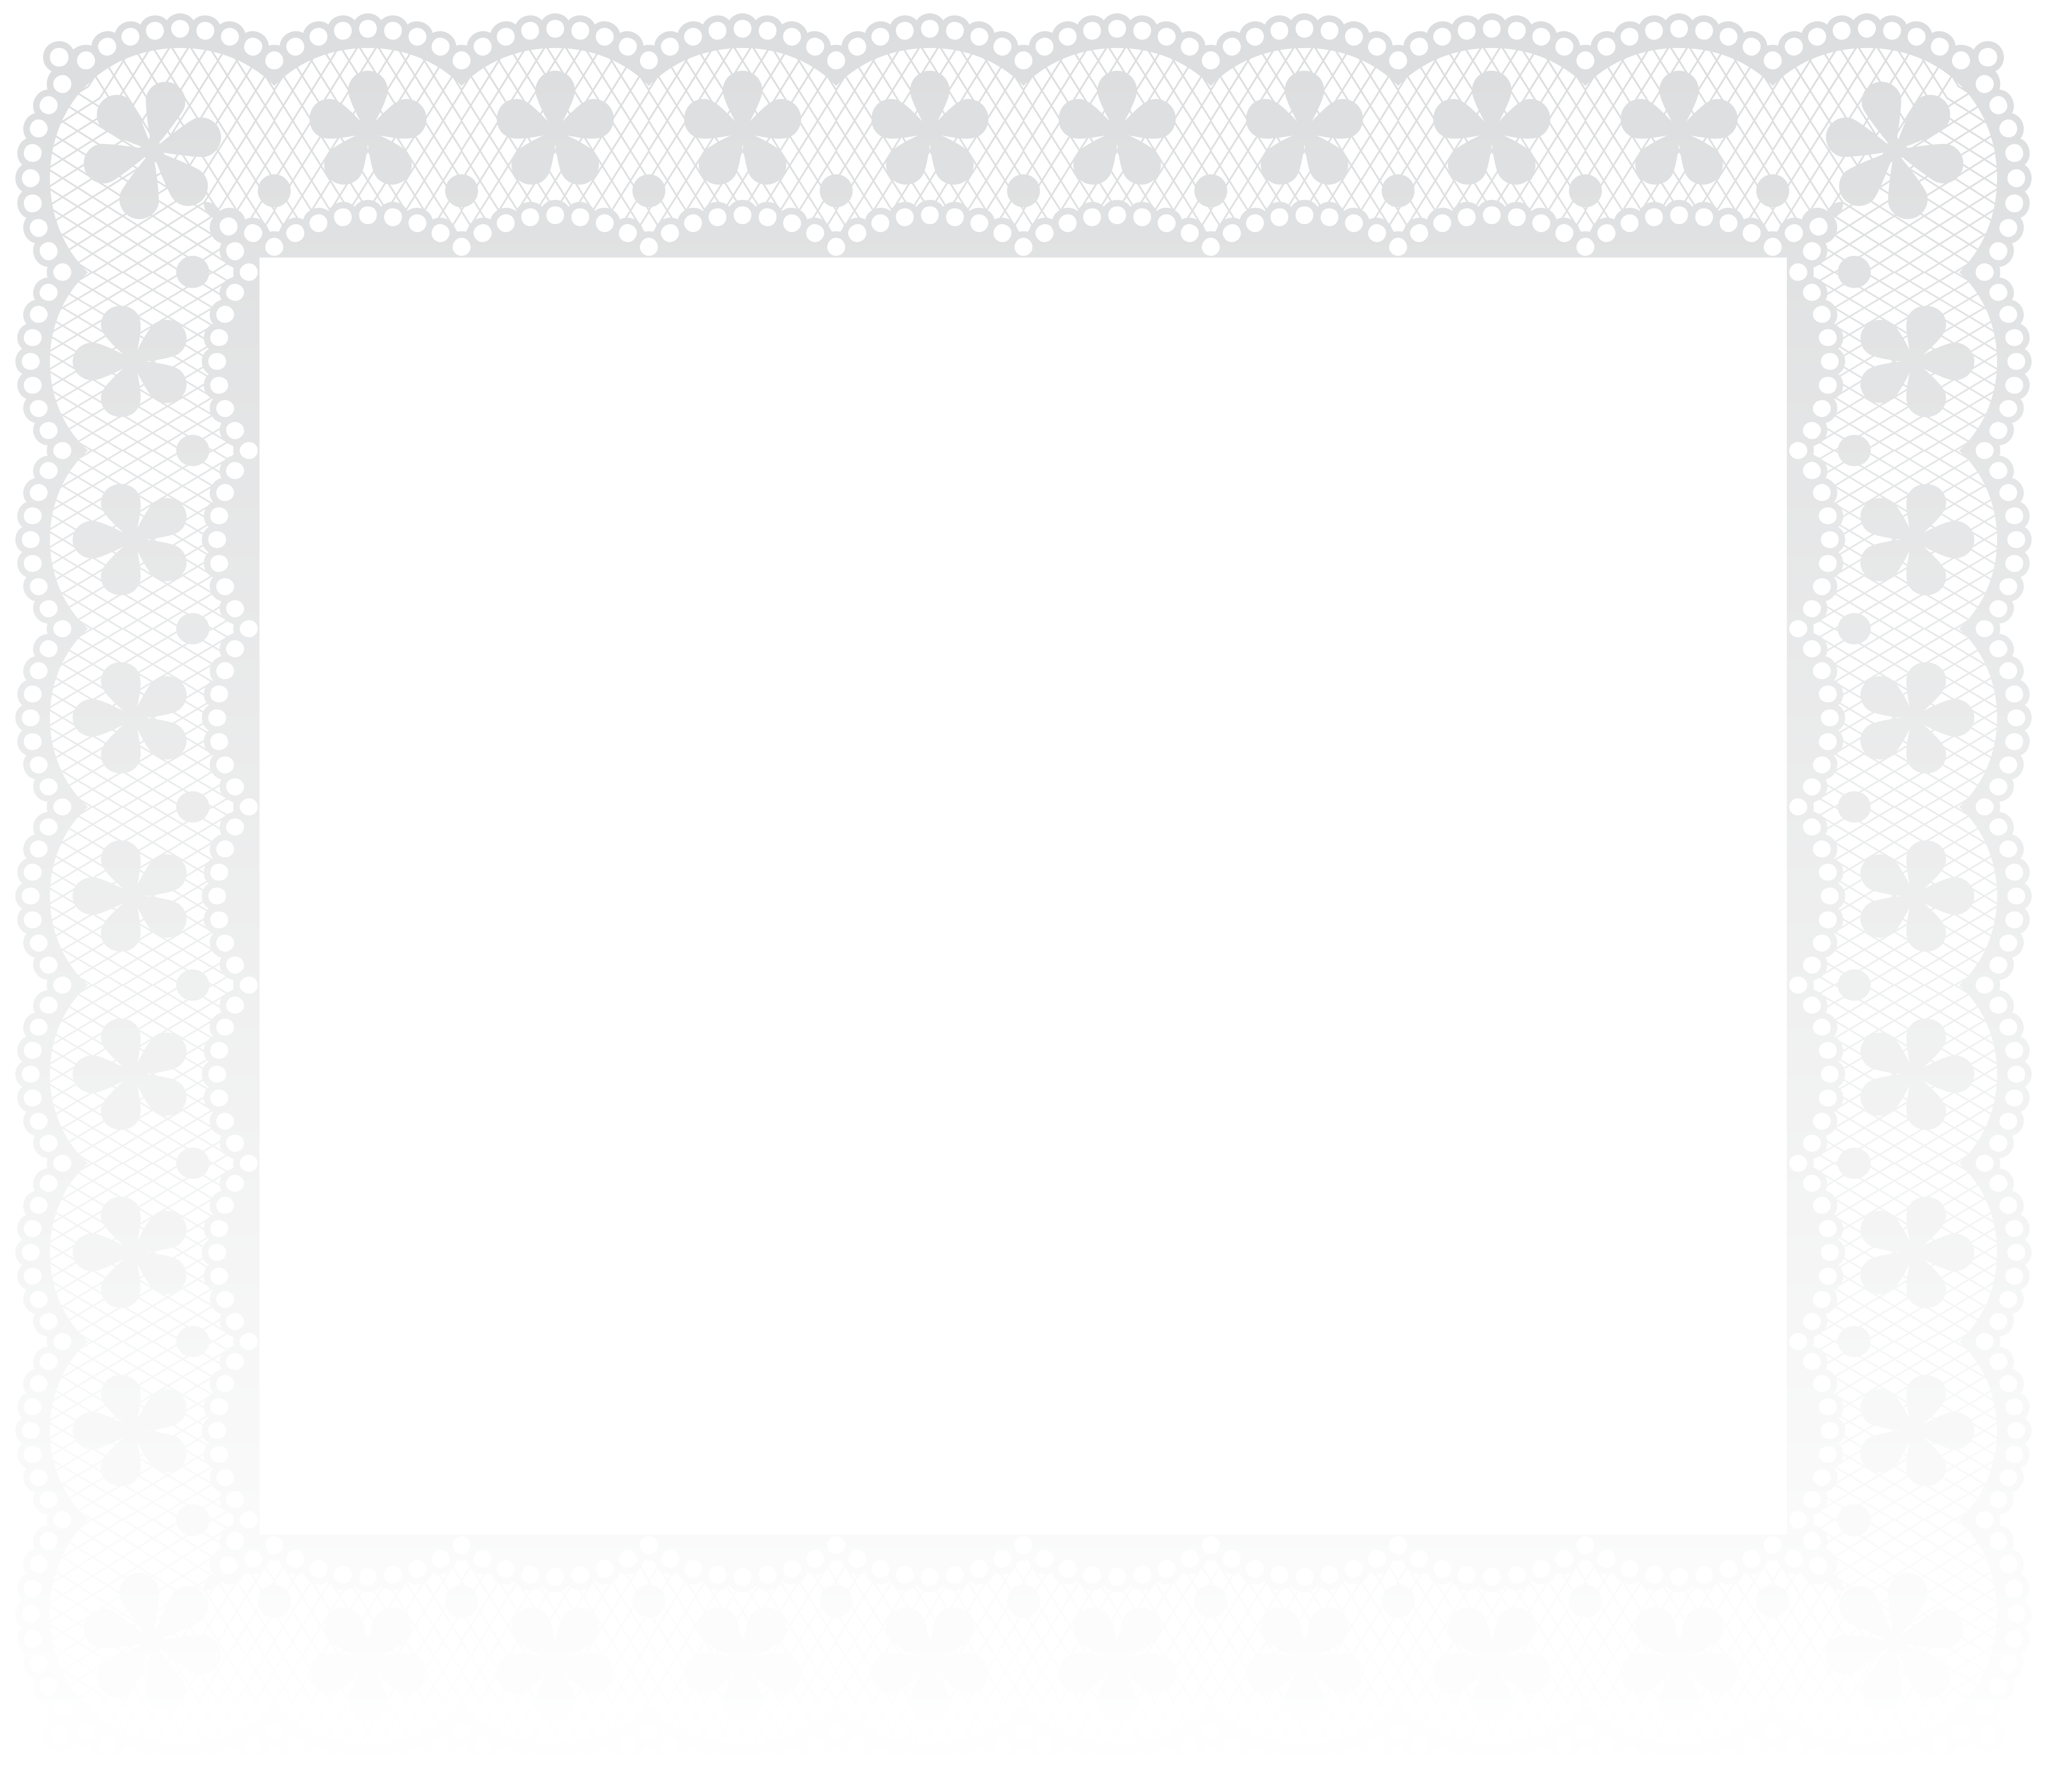 White snowflake transparent frame clipart banner black and white download Lace Border Frame PNG Clip Art Image | Gallery Yopriceville - High ... banner black and white download